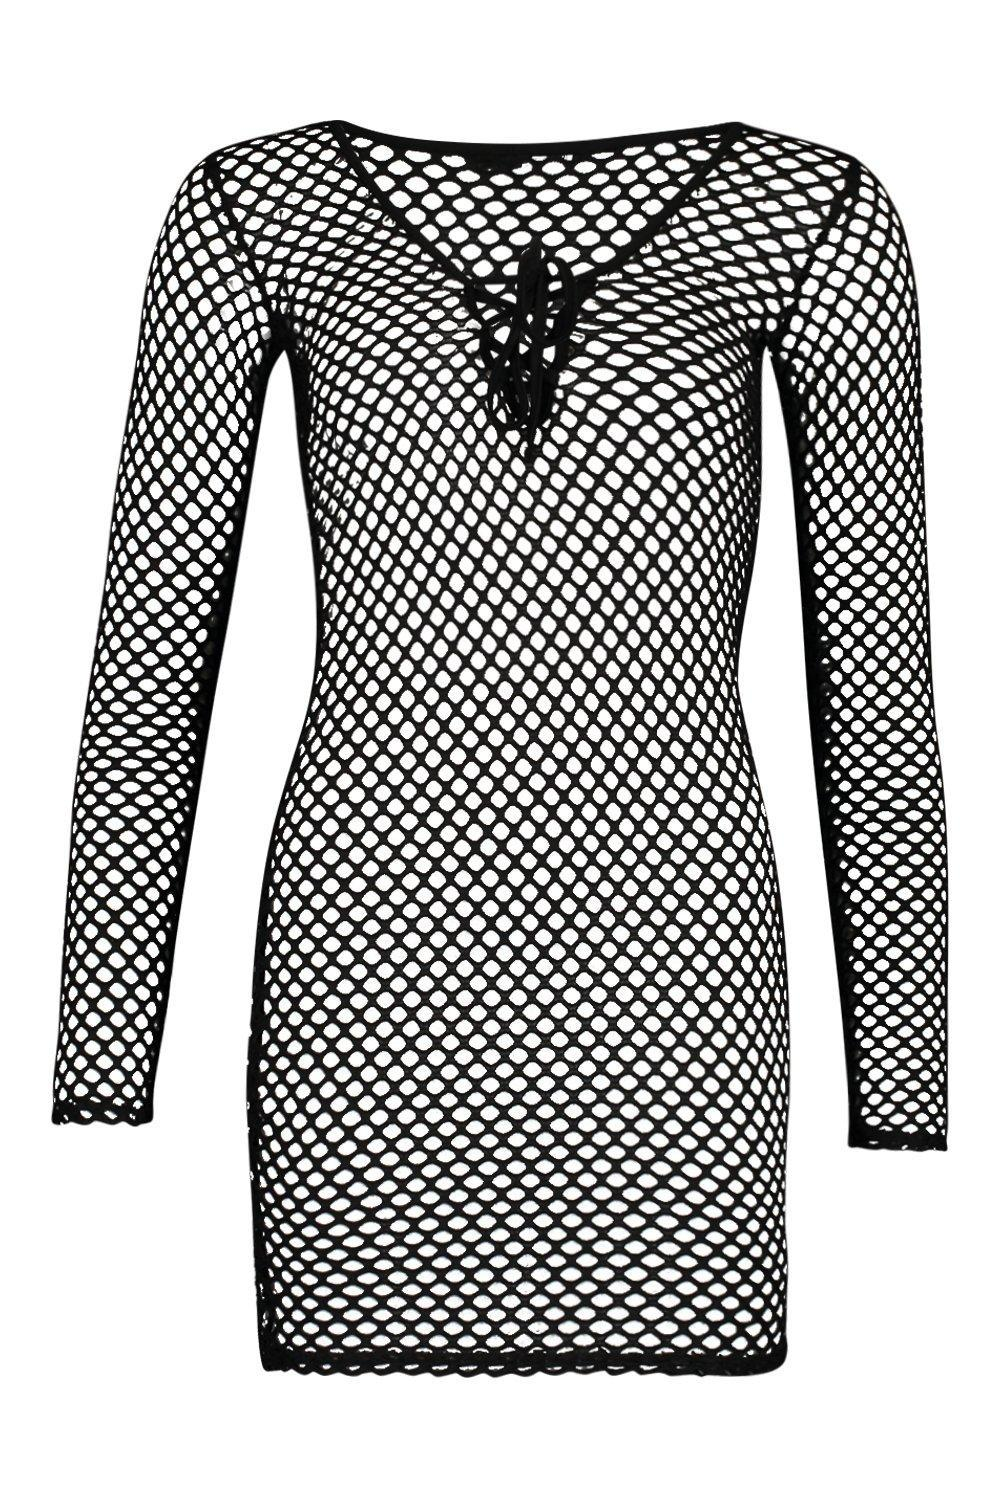 e936336b35 Boohoo - Black Lace Up Fishnet Beach Dress - Lyst. View fullscreen